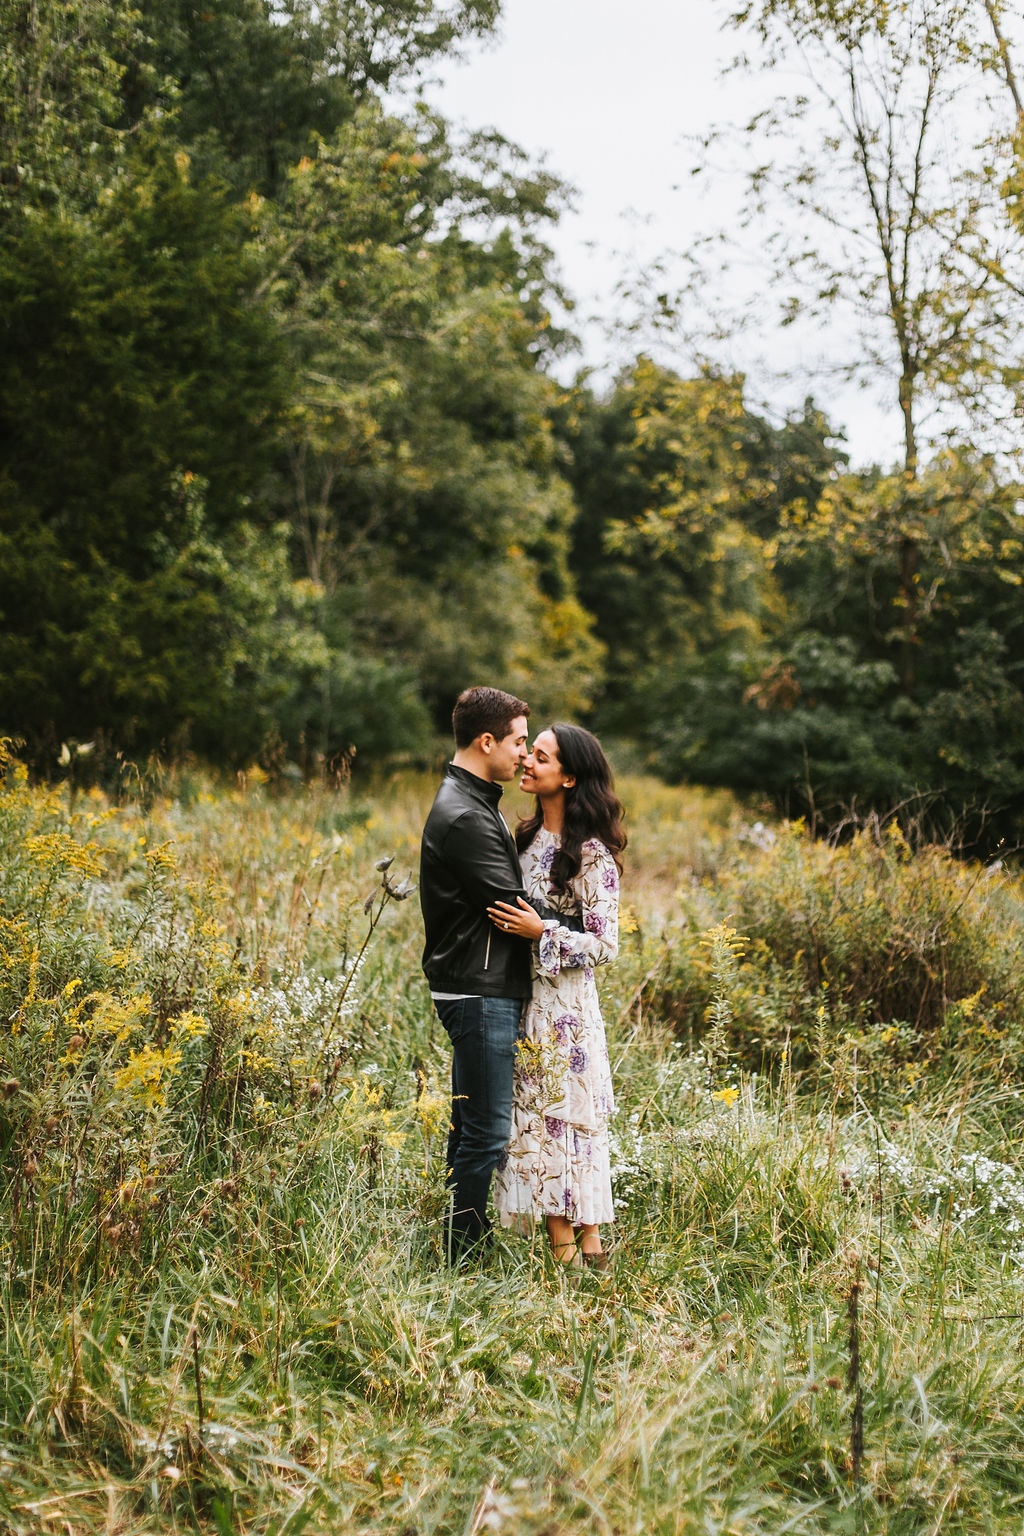 terrapin-village-engagement-session-outdoors.jpg